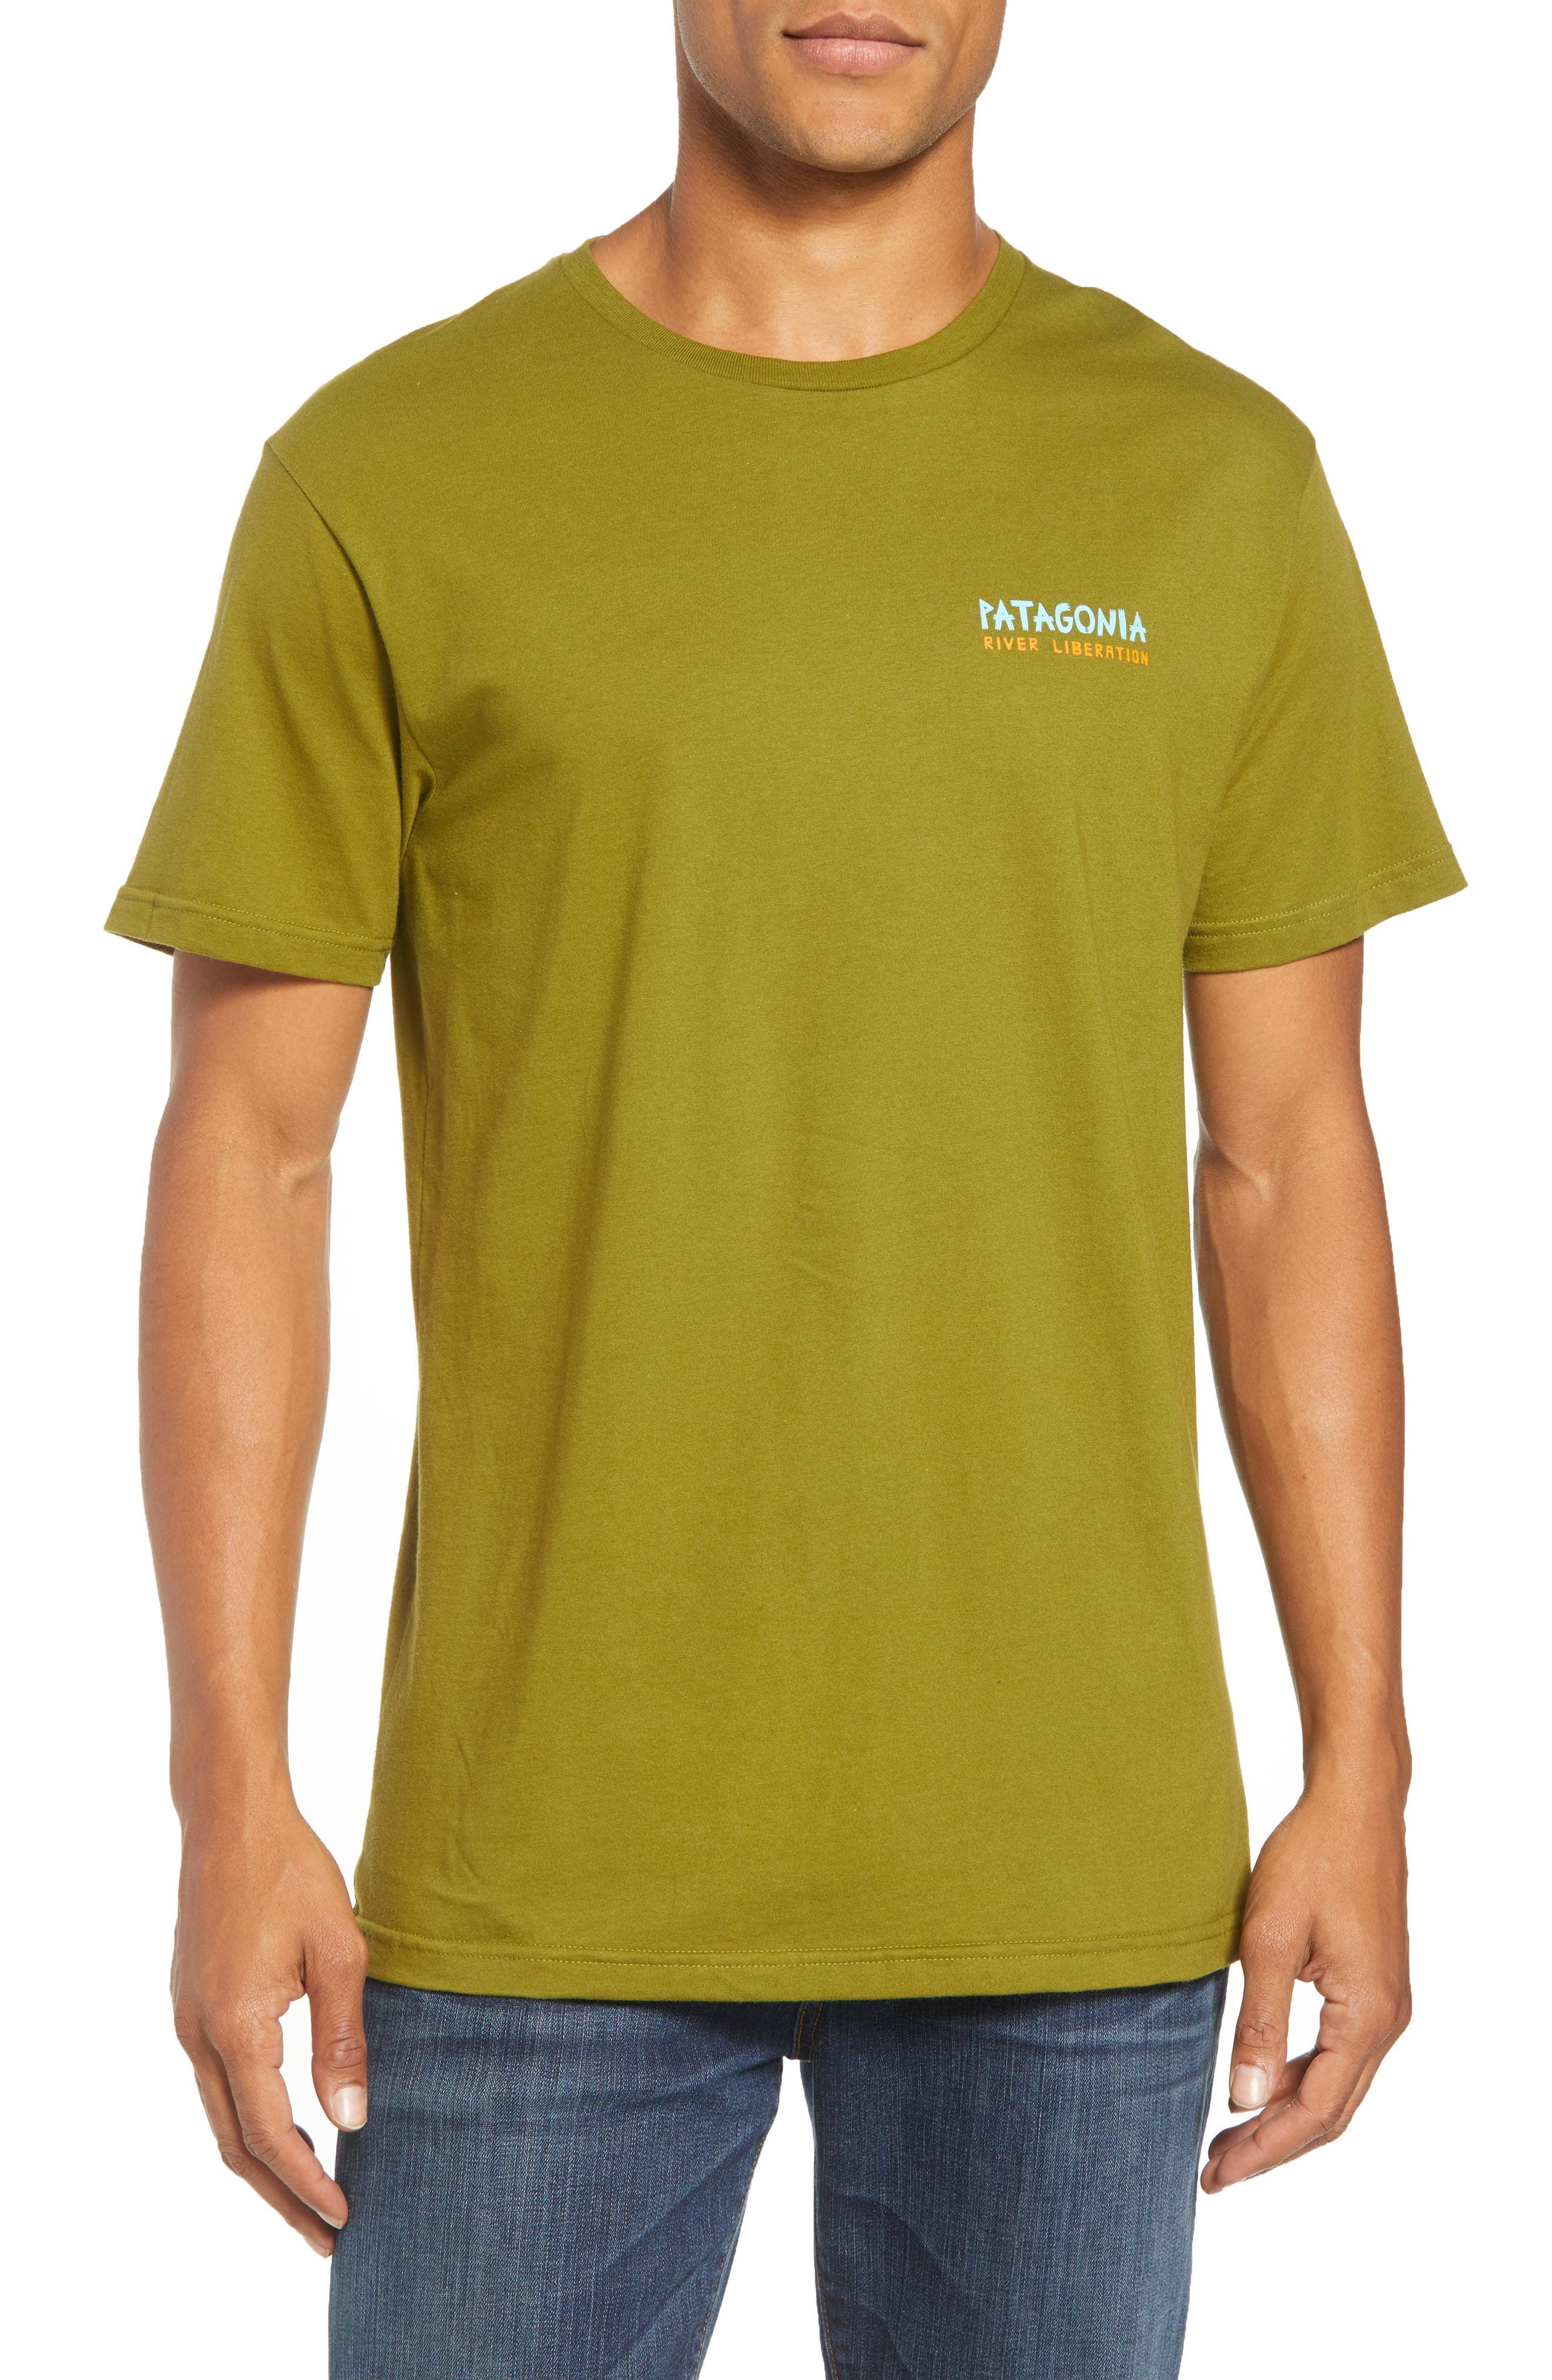 River Liberation Organic Cotton Graphic T-Shirt,                         Main,                         color, WILLOW HERB GREEN